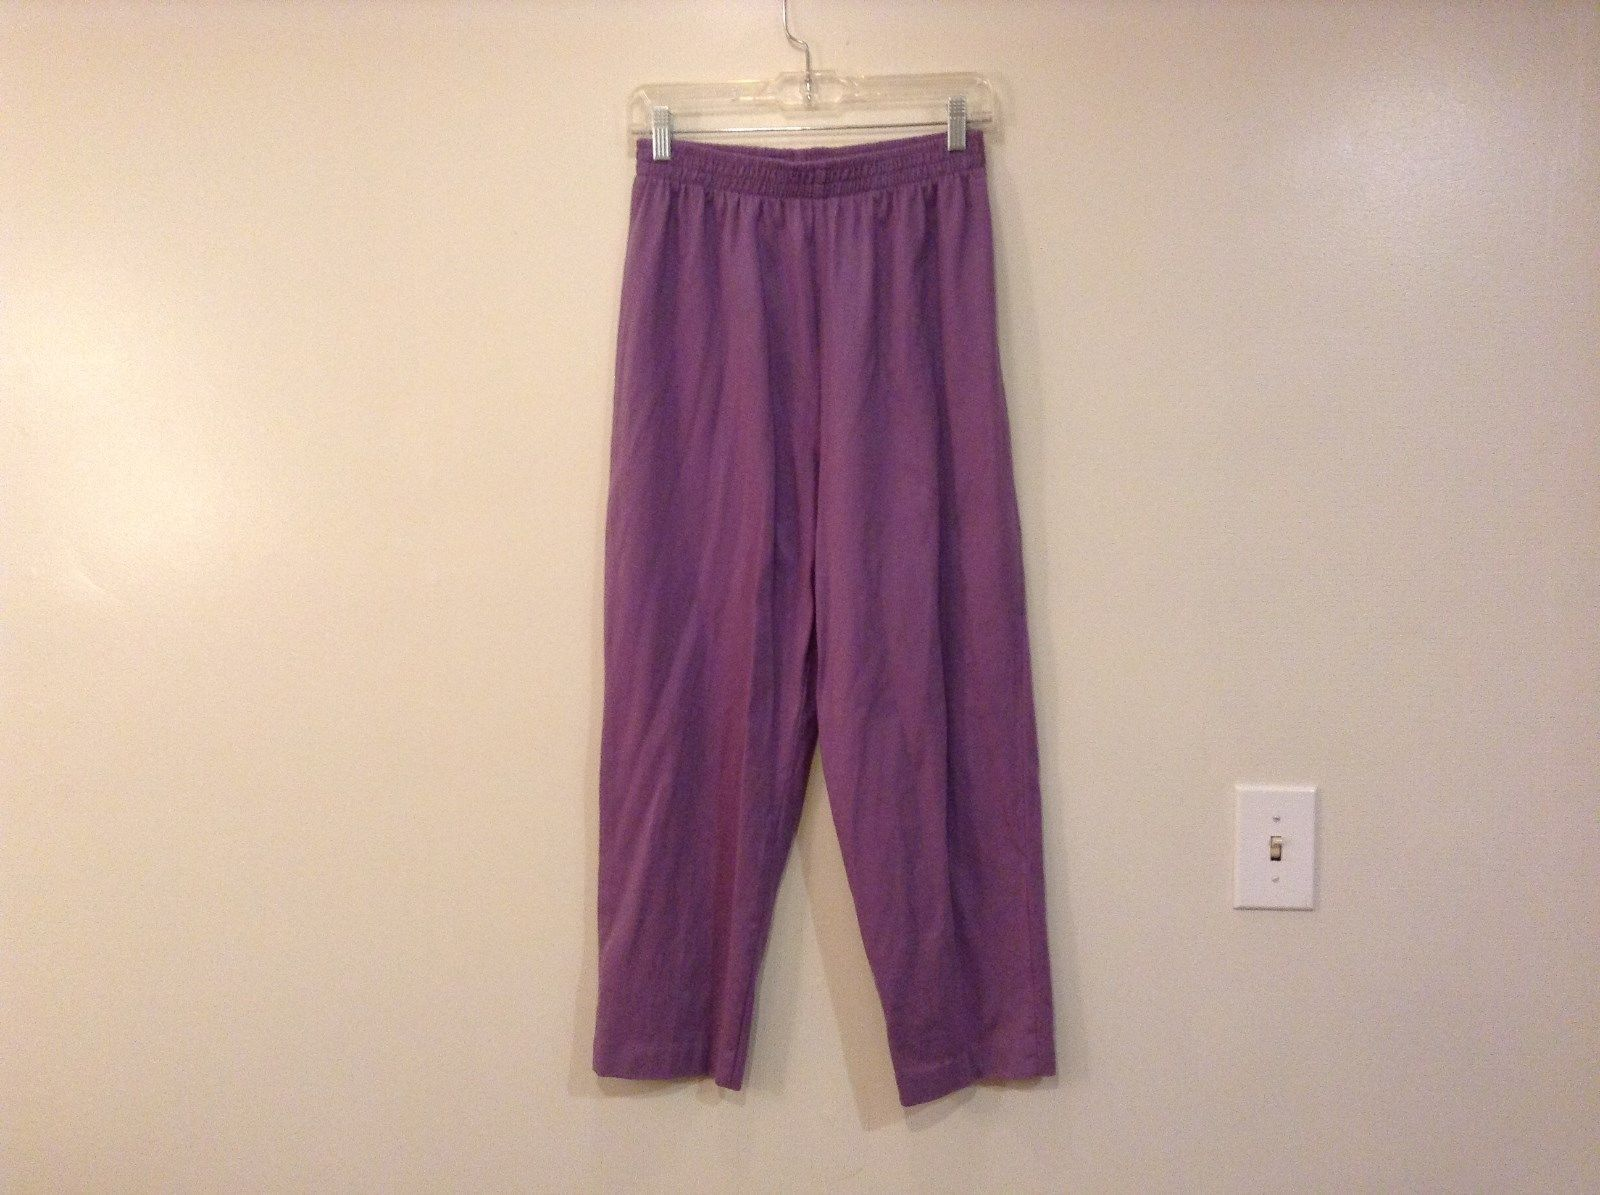 KWBL Los Angeles Lavender Pants Elastic Waist No Tags See Measurements Below